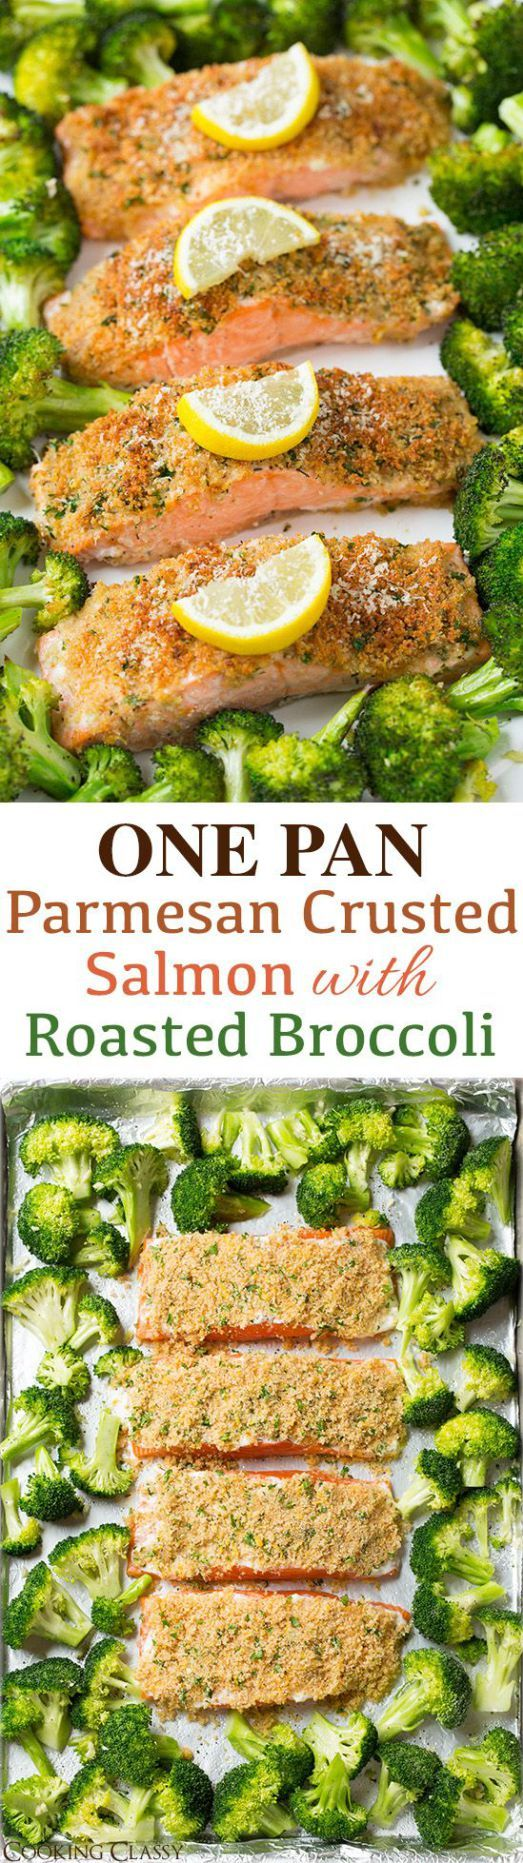 Single Sheet Pan Parmesan Crusted Salmon with Roasted Broccoli Recipe via Cooking Classy - everything is roasted together on one pan so clean up is a breeze! It's healthy and it tastes incredible!